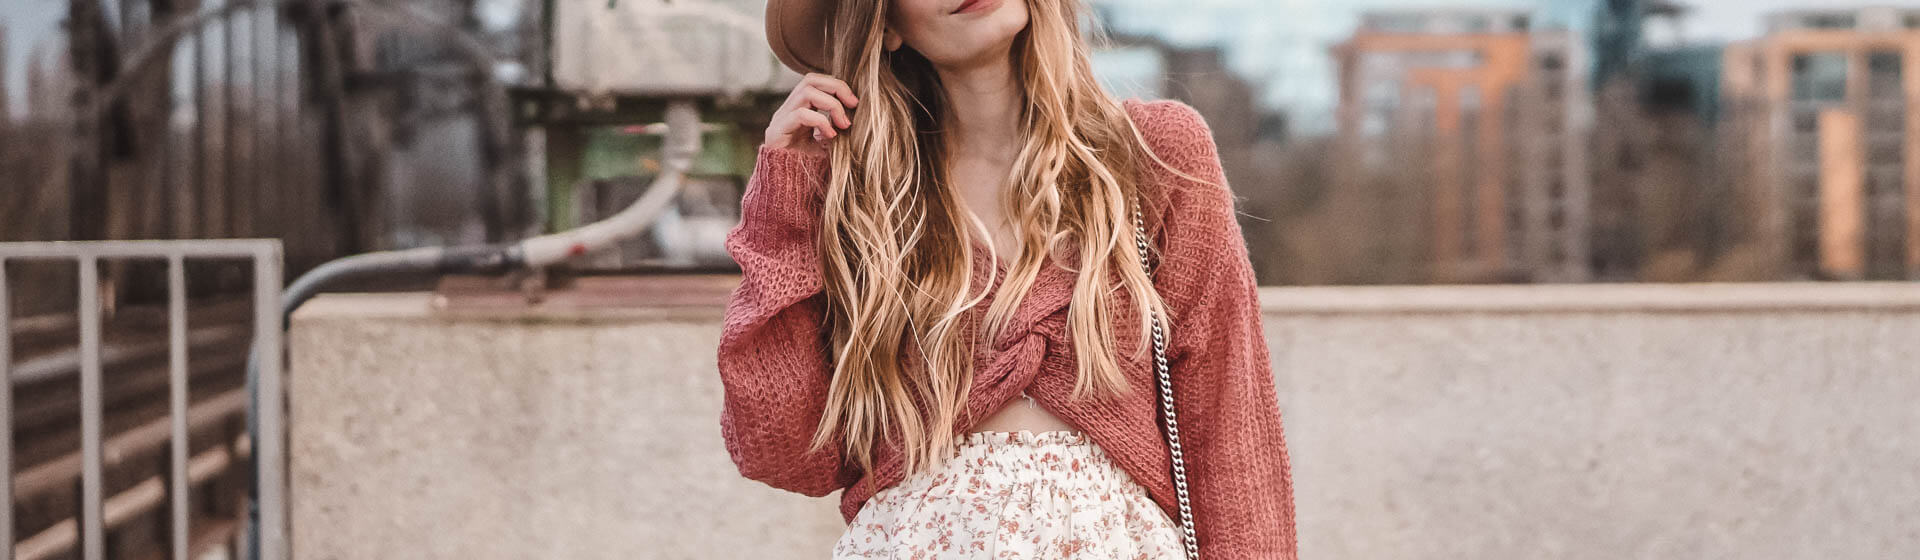 Twisted Pullover: verdrehte Pullover im Trend